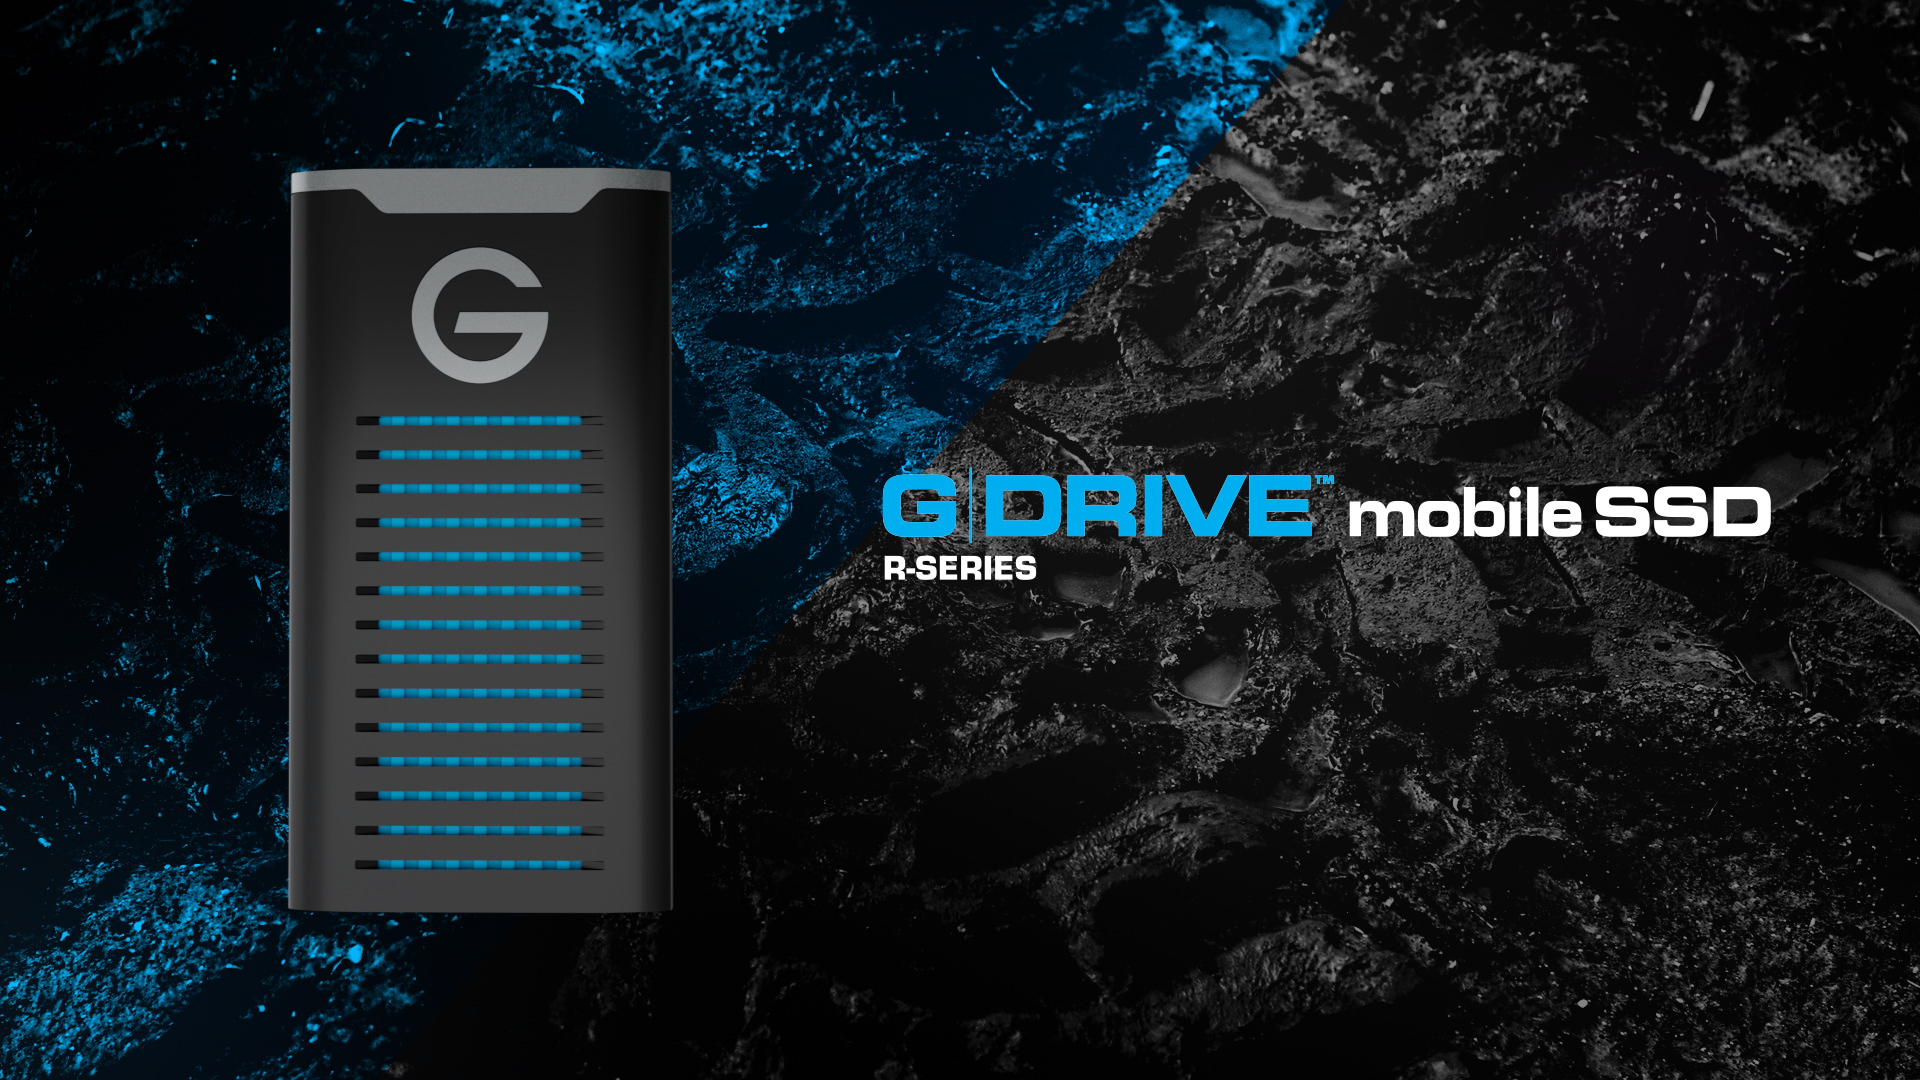 G-Drive Mobile SSD R-Series_Director's Cut No Sound.00_00_04_09.Still001.png